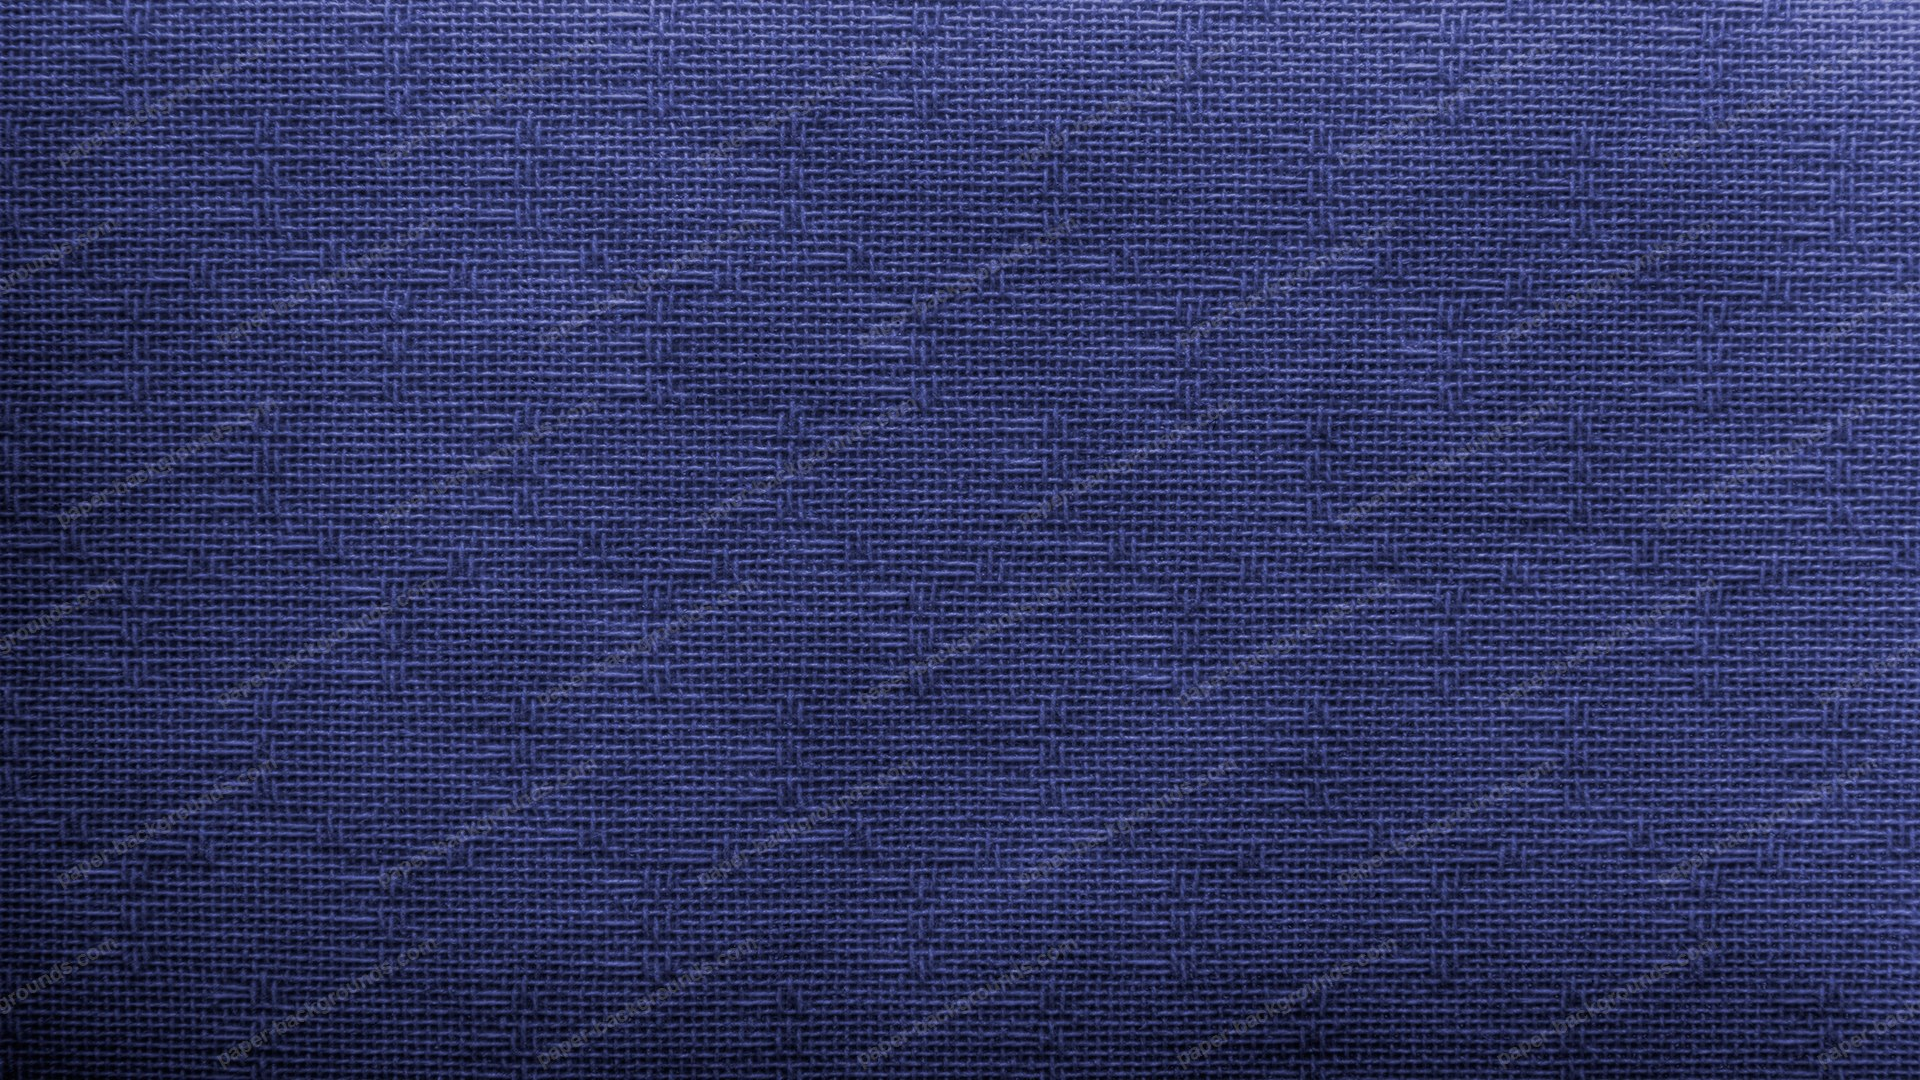 Vintage Blue Canvas Texture Background HD 1920 x 1080p